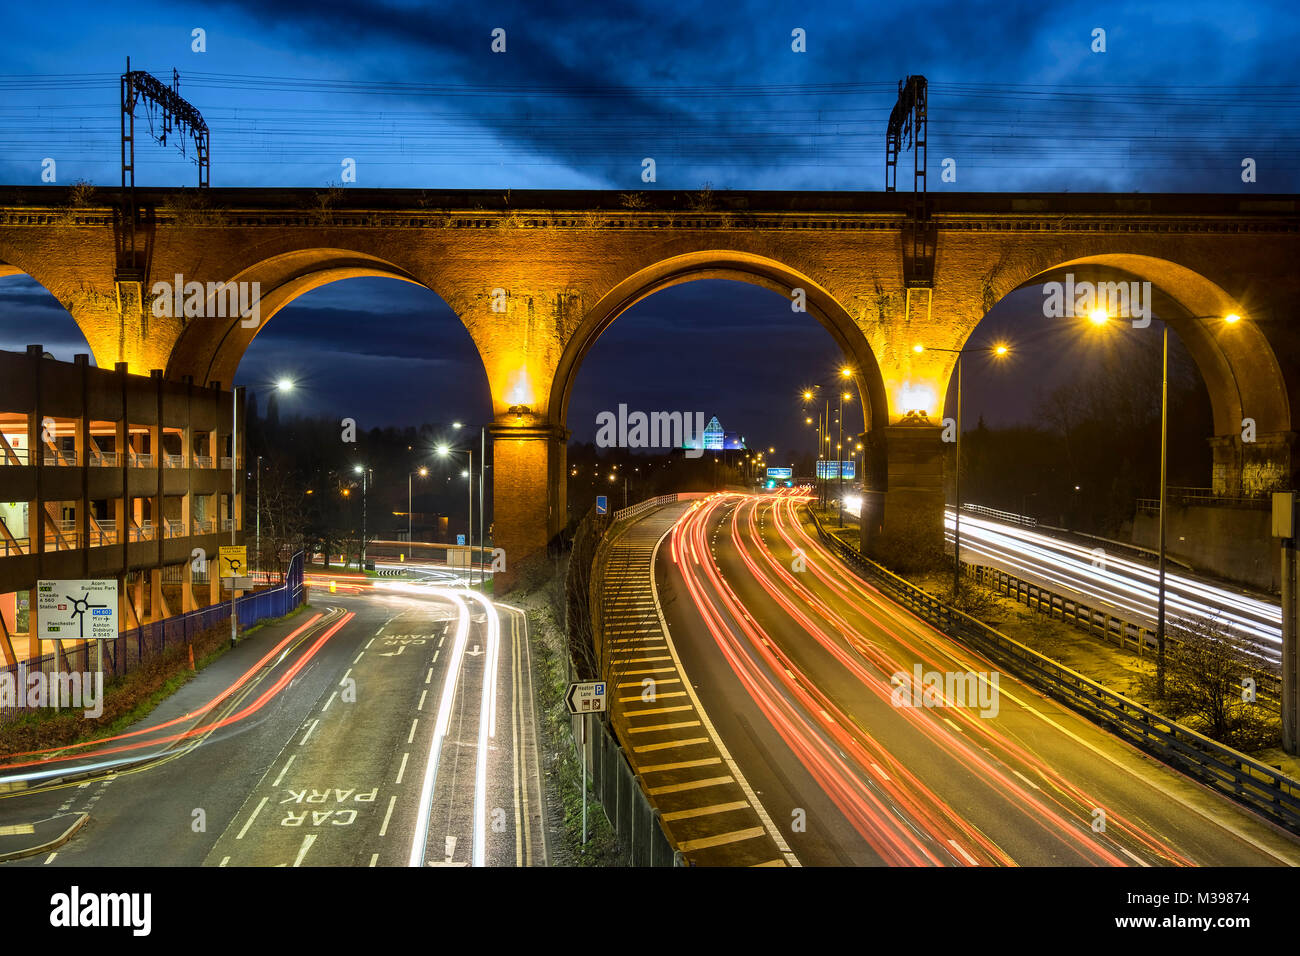 The Stockport Viaduct and M60 Traffic at Night, Stockport, Greater Manchester, England, UK - Stock Image